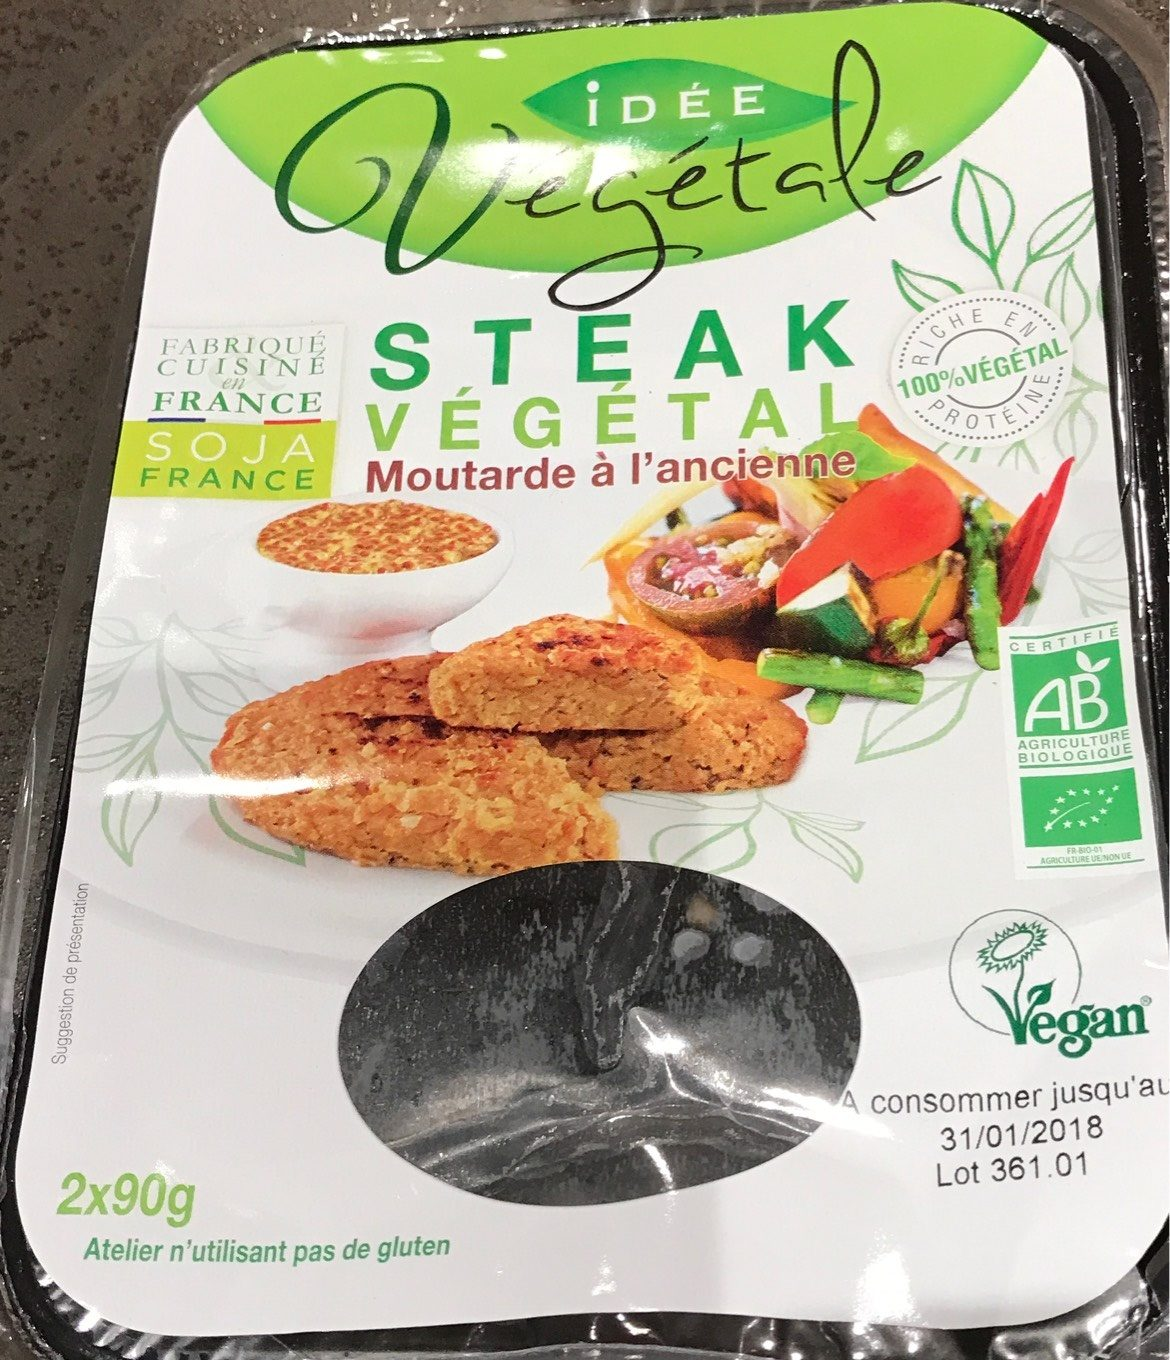 Steak Végétal - moutarde à l'ancienne - Product